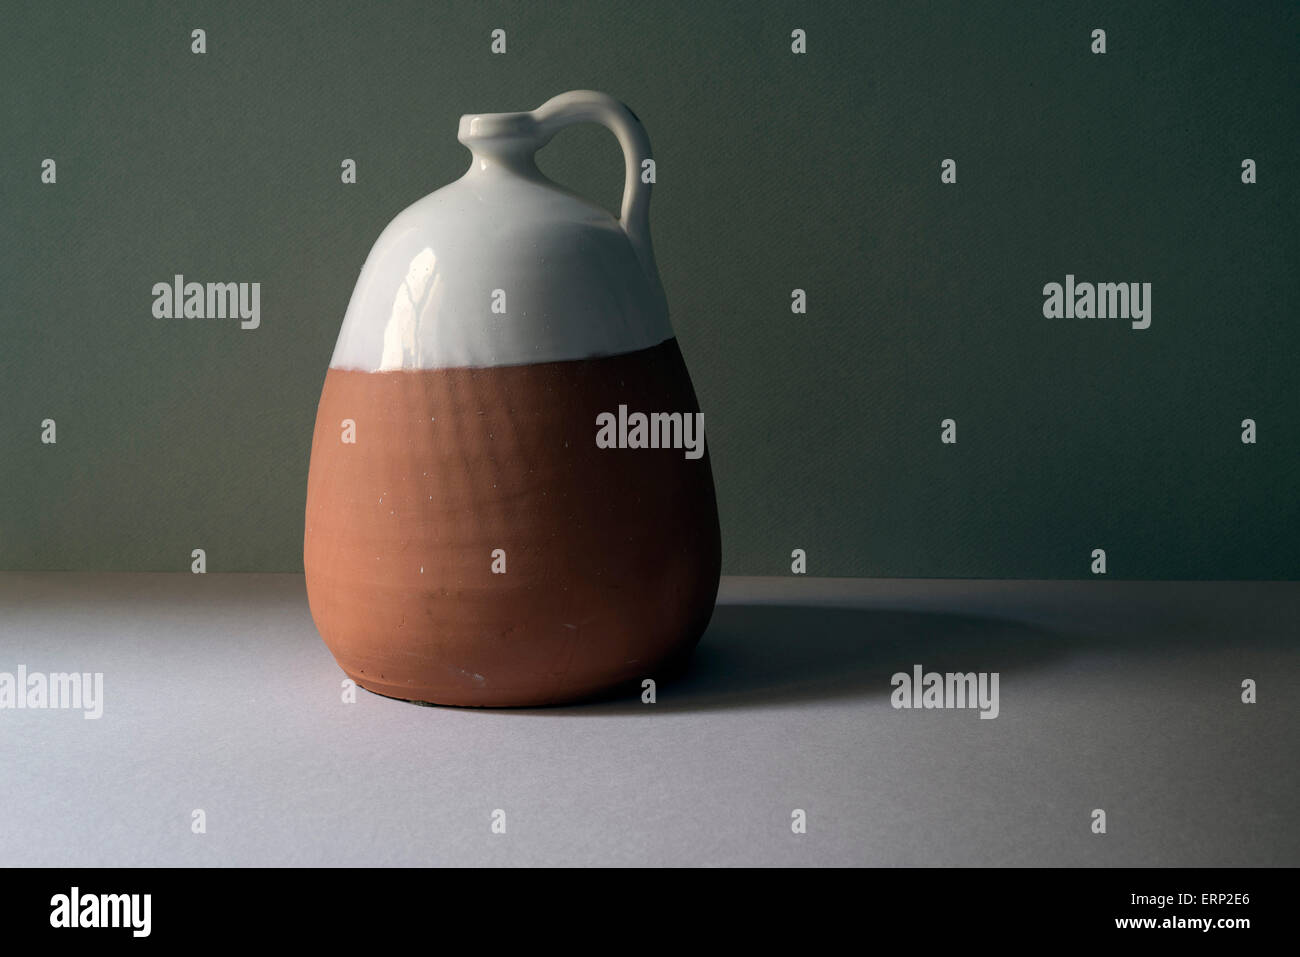 Still life with clay pottery. Copy space - Stock Image